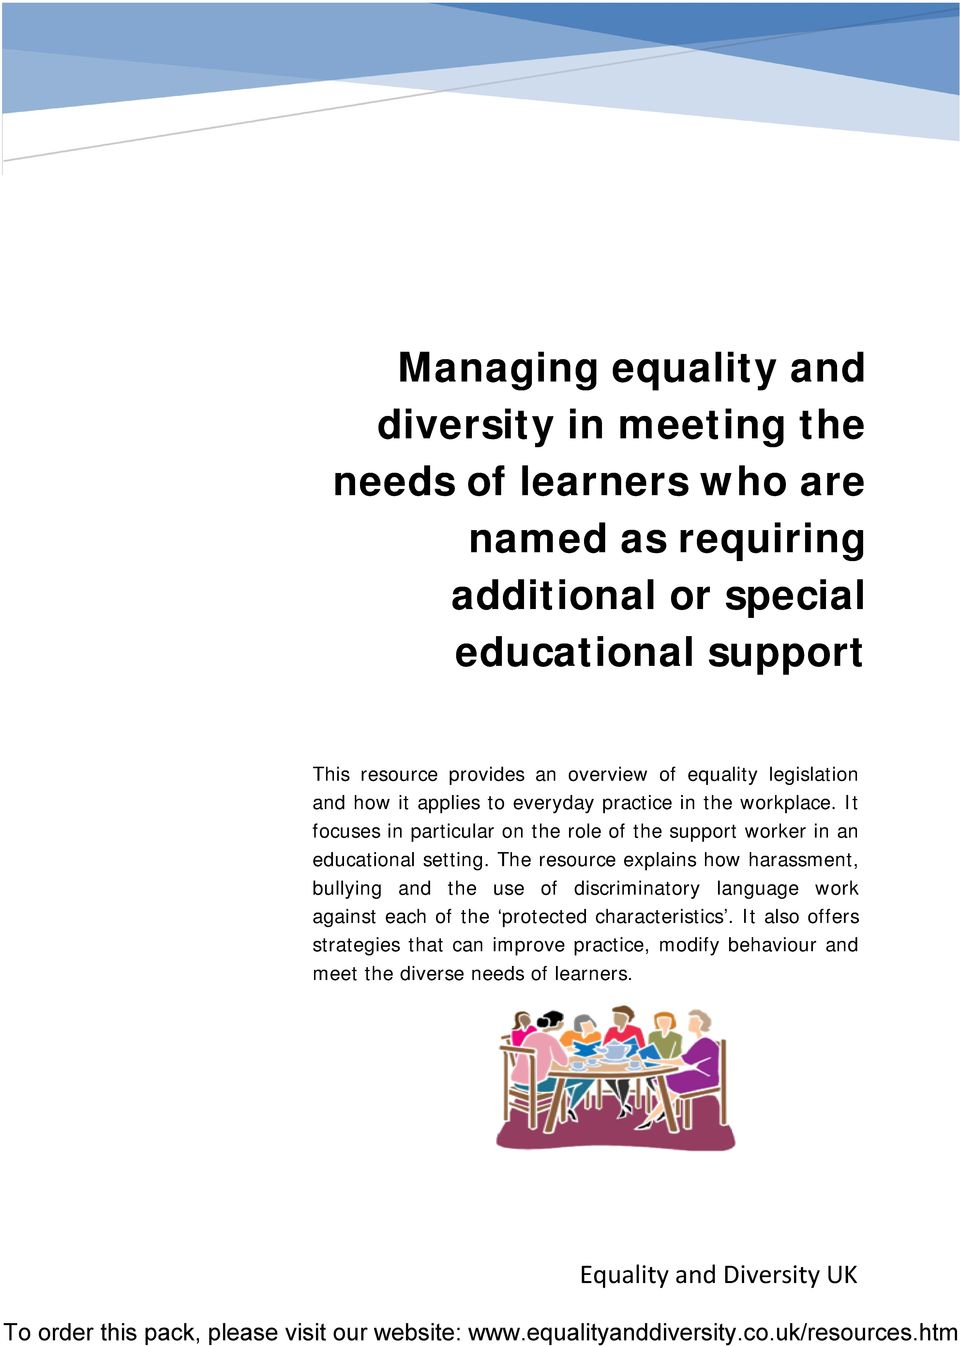 It focuses in particular on the role of the support worker in an educational setting.